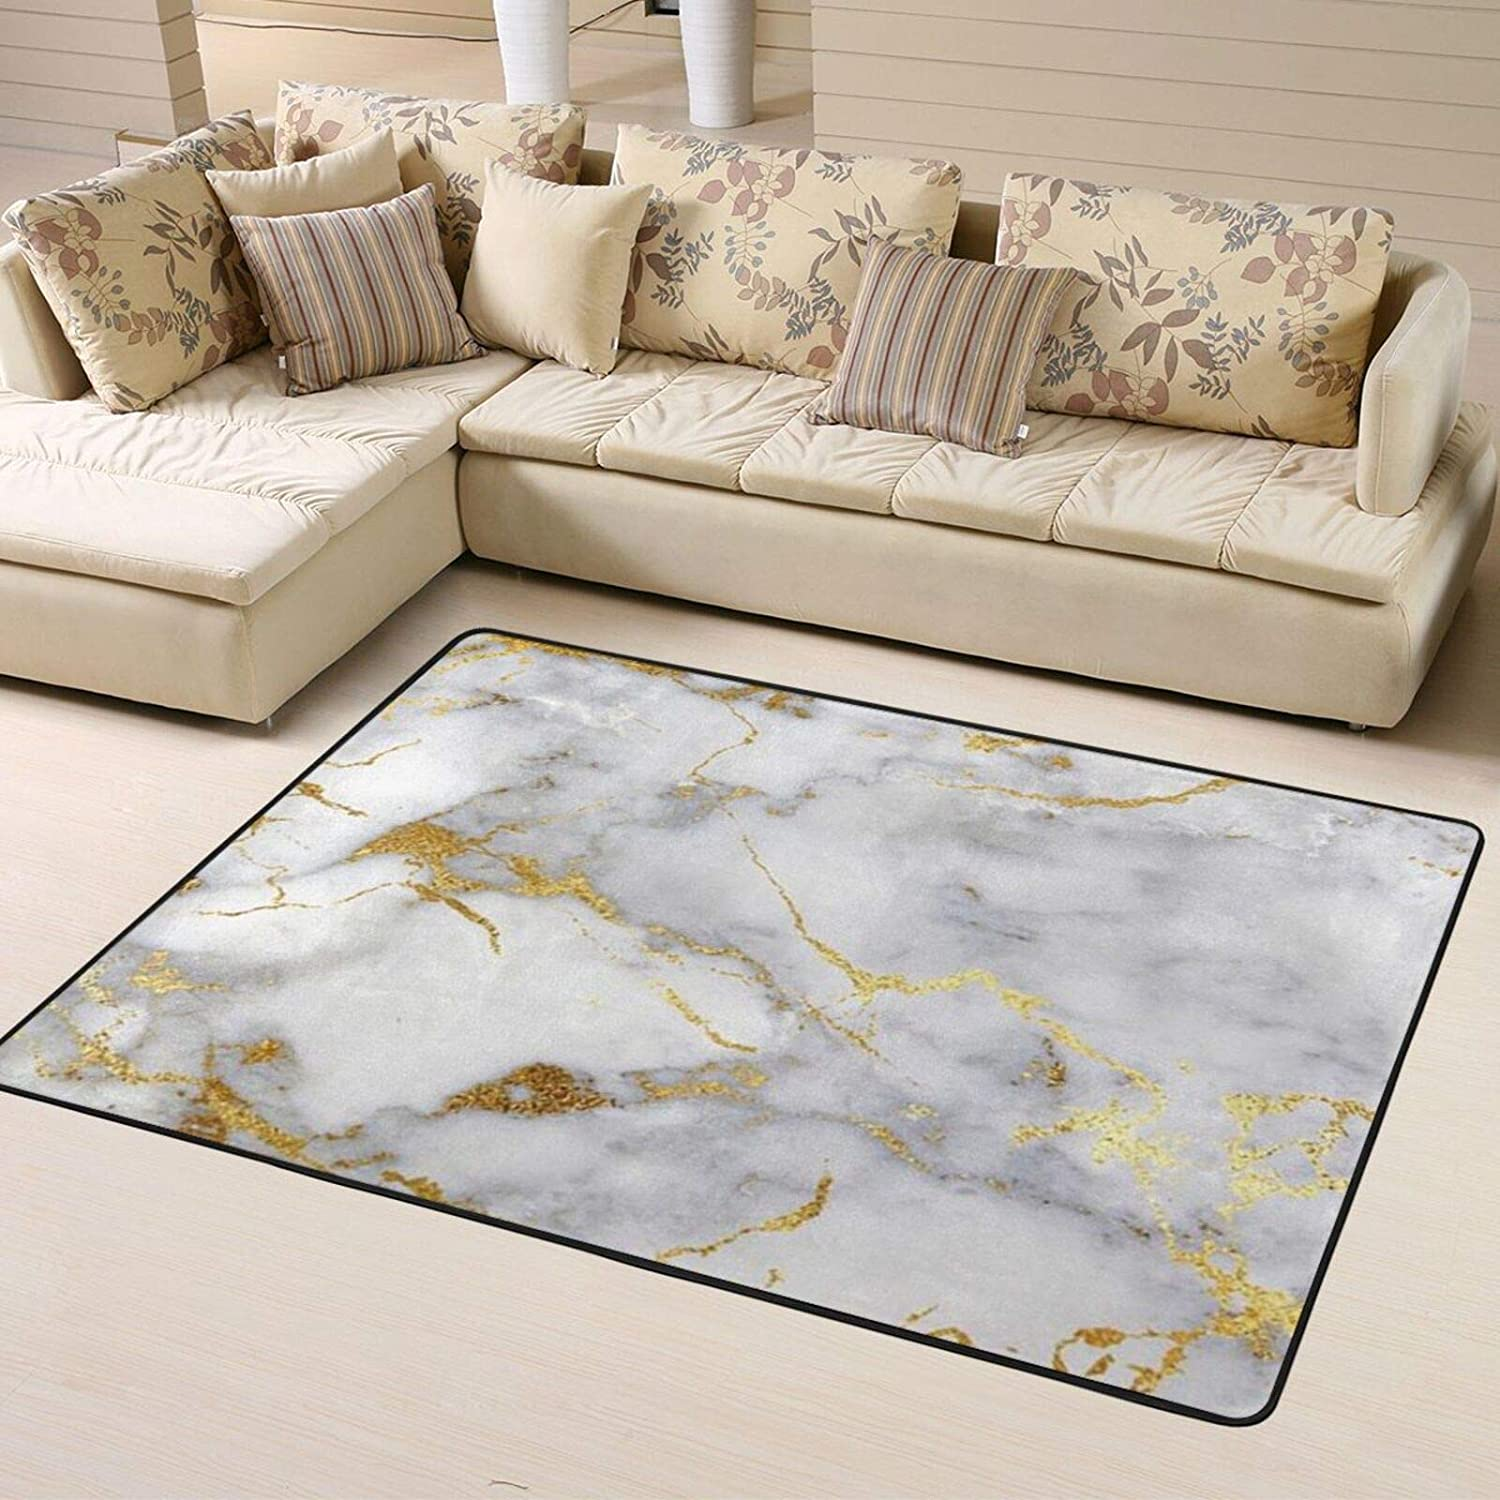 Outlet sale feature Gold Marble Soft Area Max 78% OFF Rugs for Room Bedroom Fluff Shaggy Living